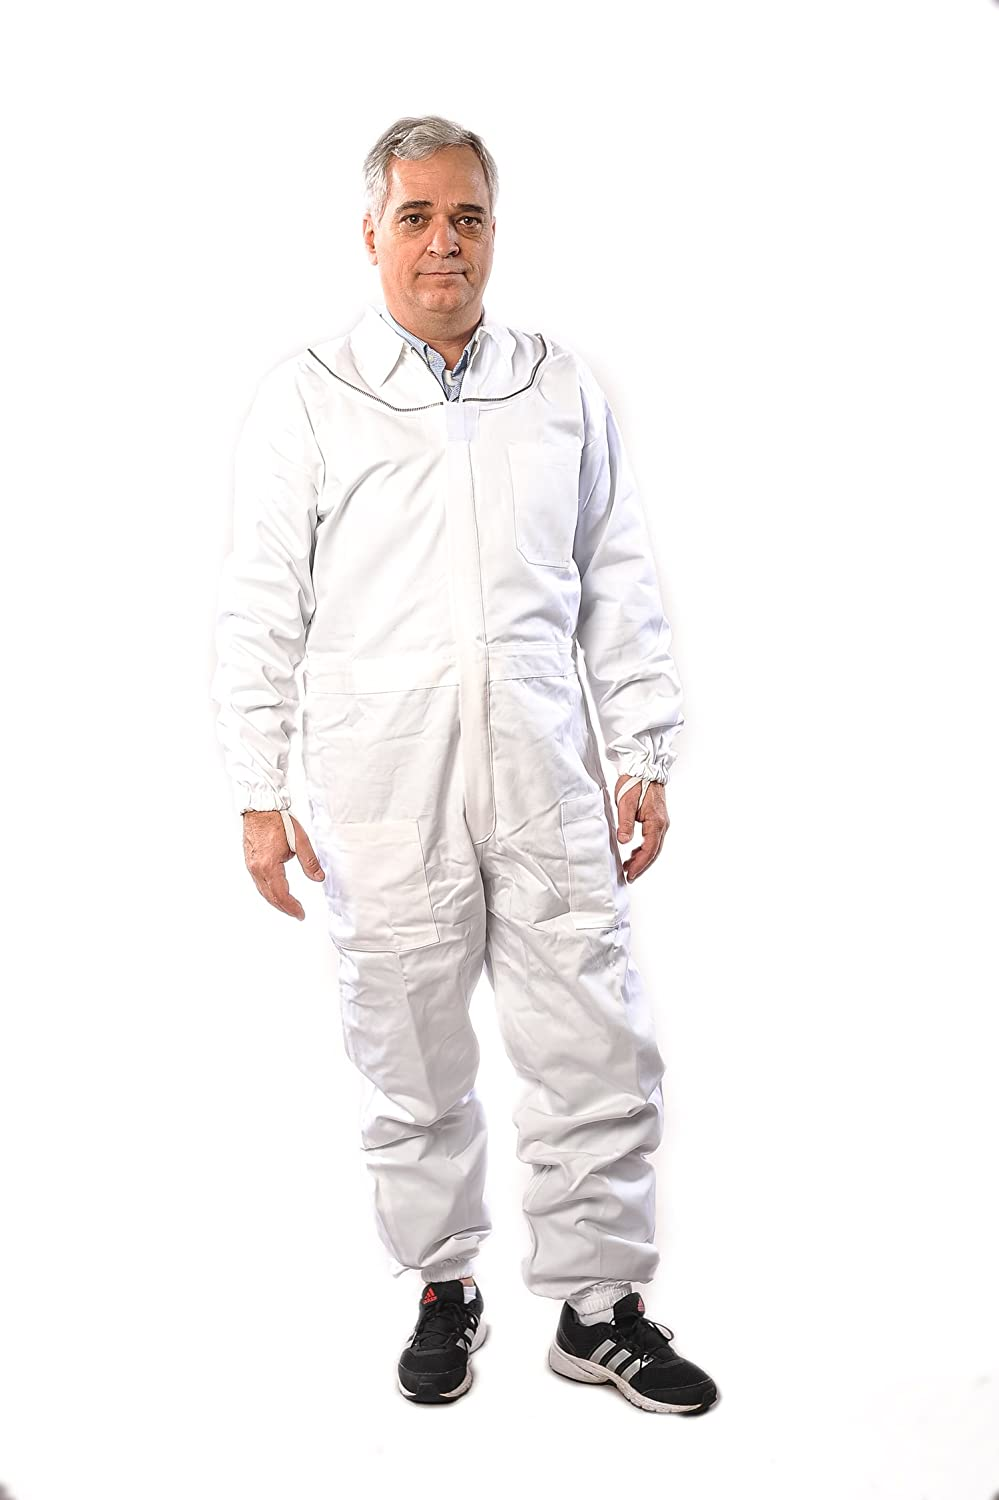 Forest Beekeeping Supply Premium Cotton Beekeeping Suit with Fencing Veil Suitable for Beginner /& Commercial Beekeepers Brass Zippers Thumb Straps Hive Tool Pockets-Medium